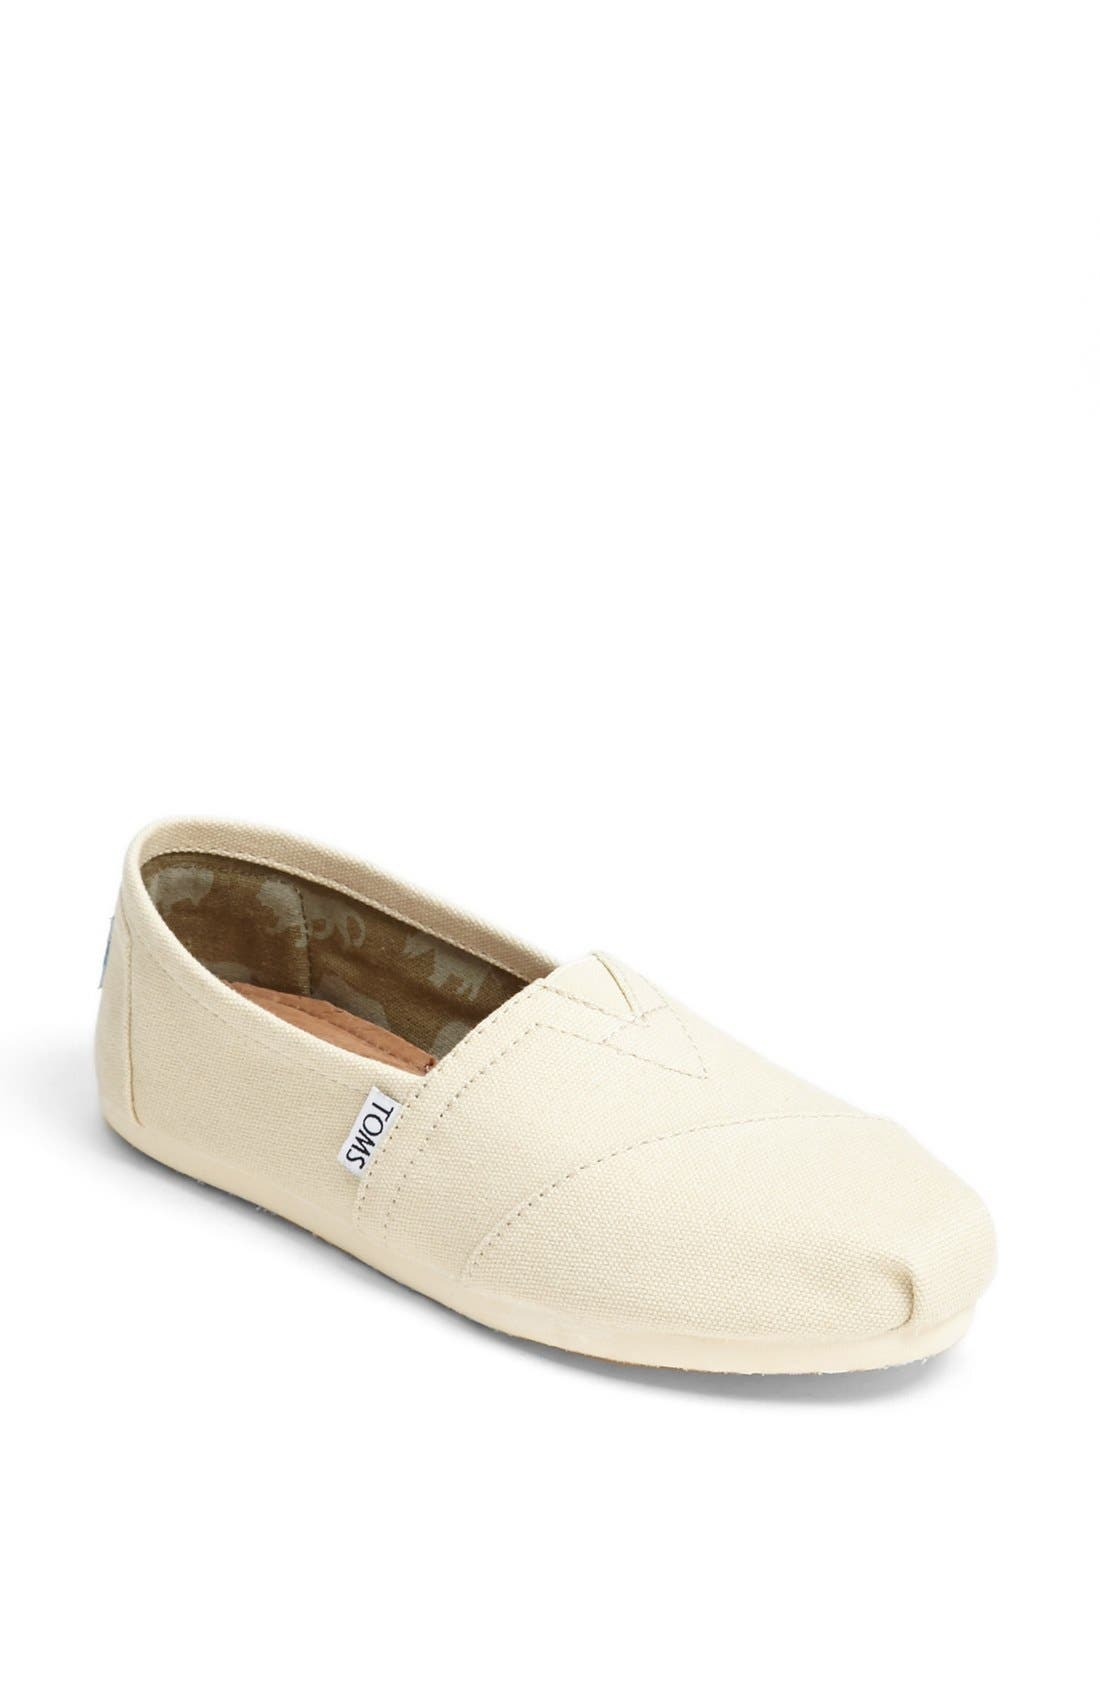 TOMS Classic Canvas Slip-On (Women)